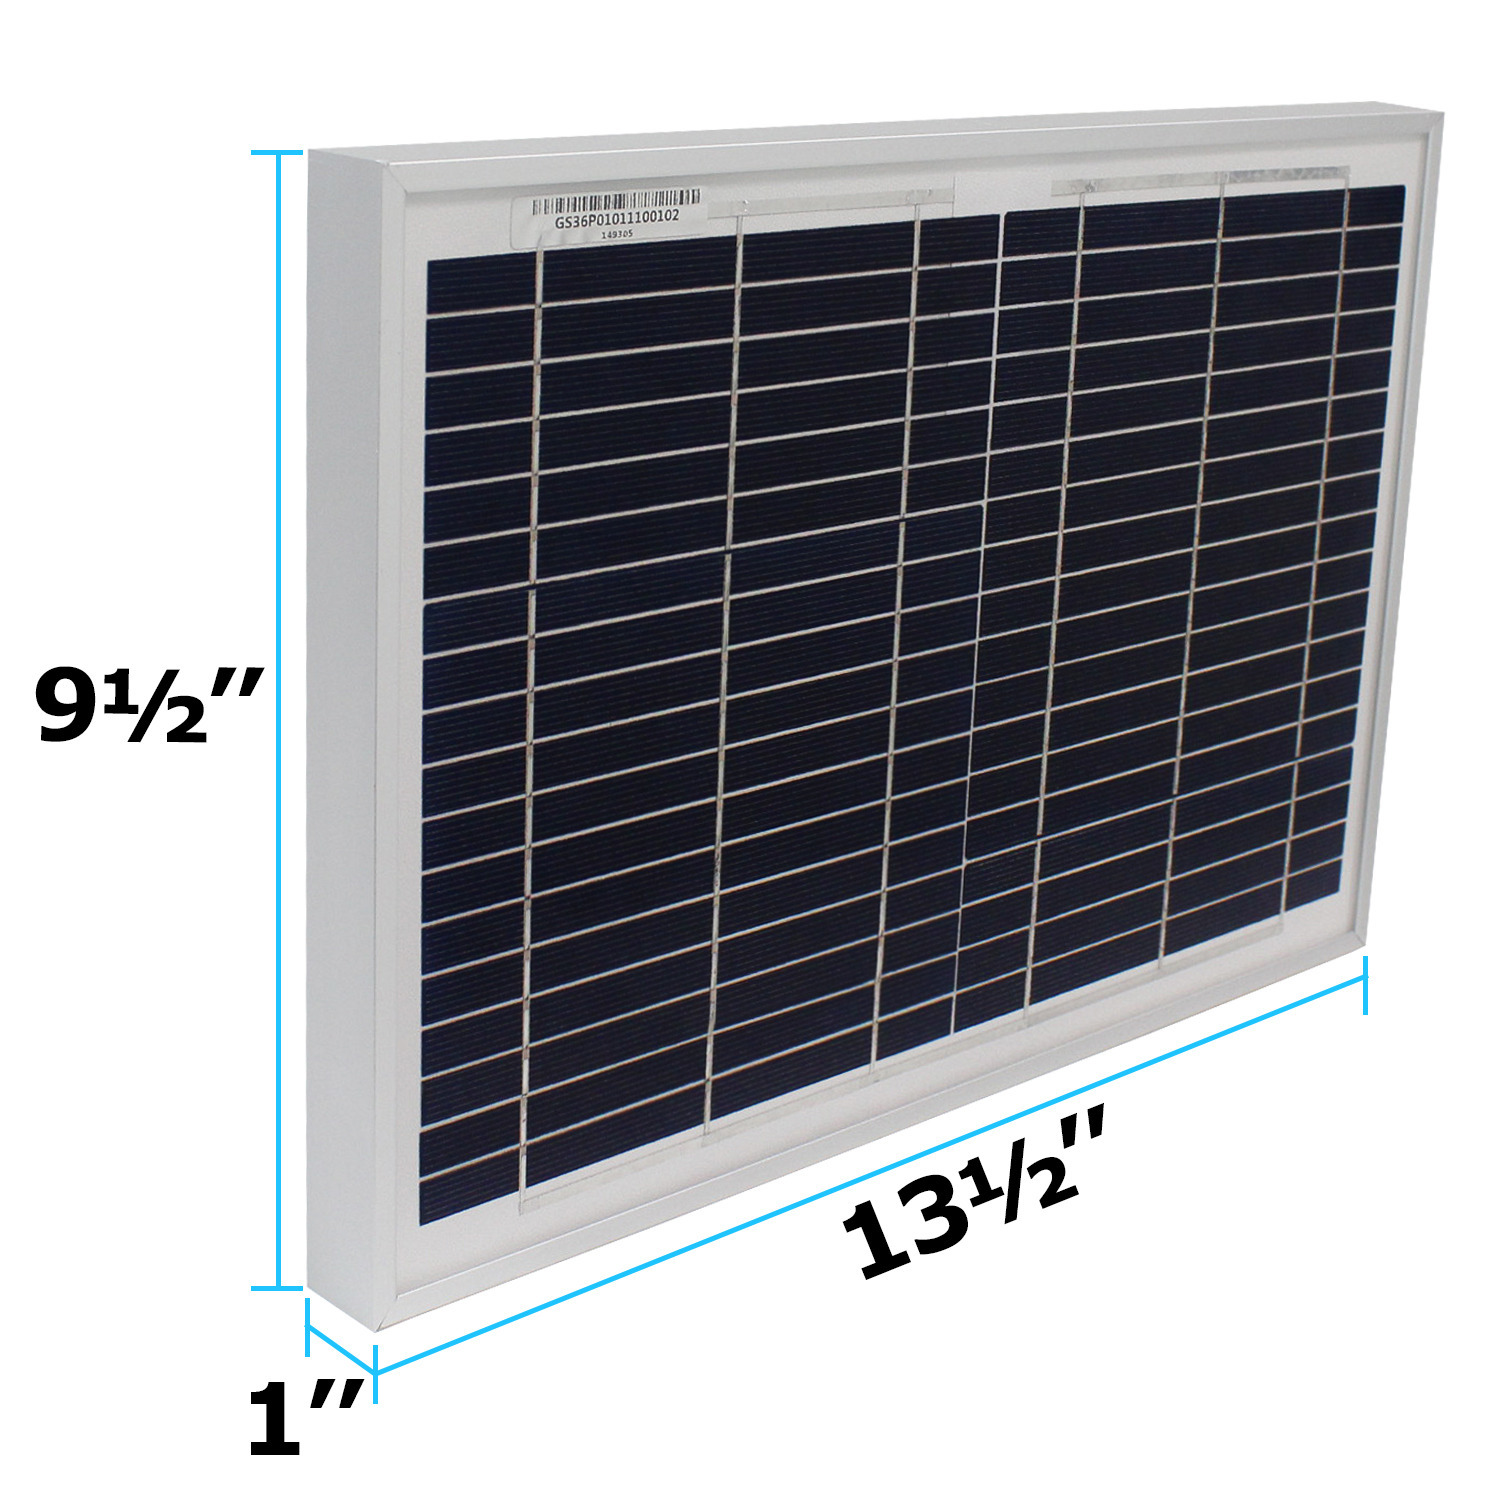 10 Watt polycrystalline solar panel with 6 foot alligator clips - 1